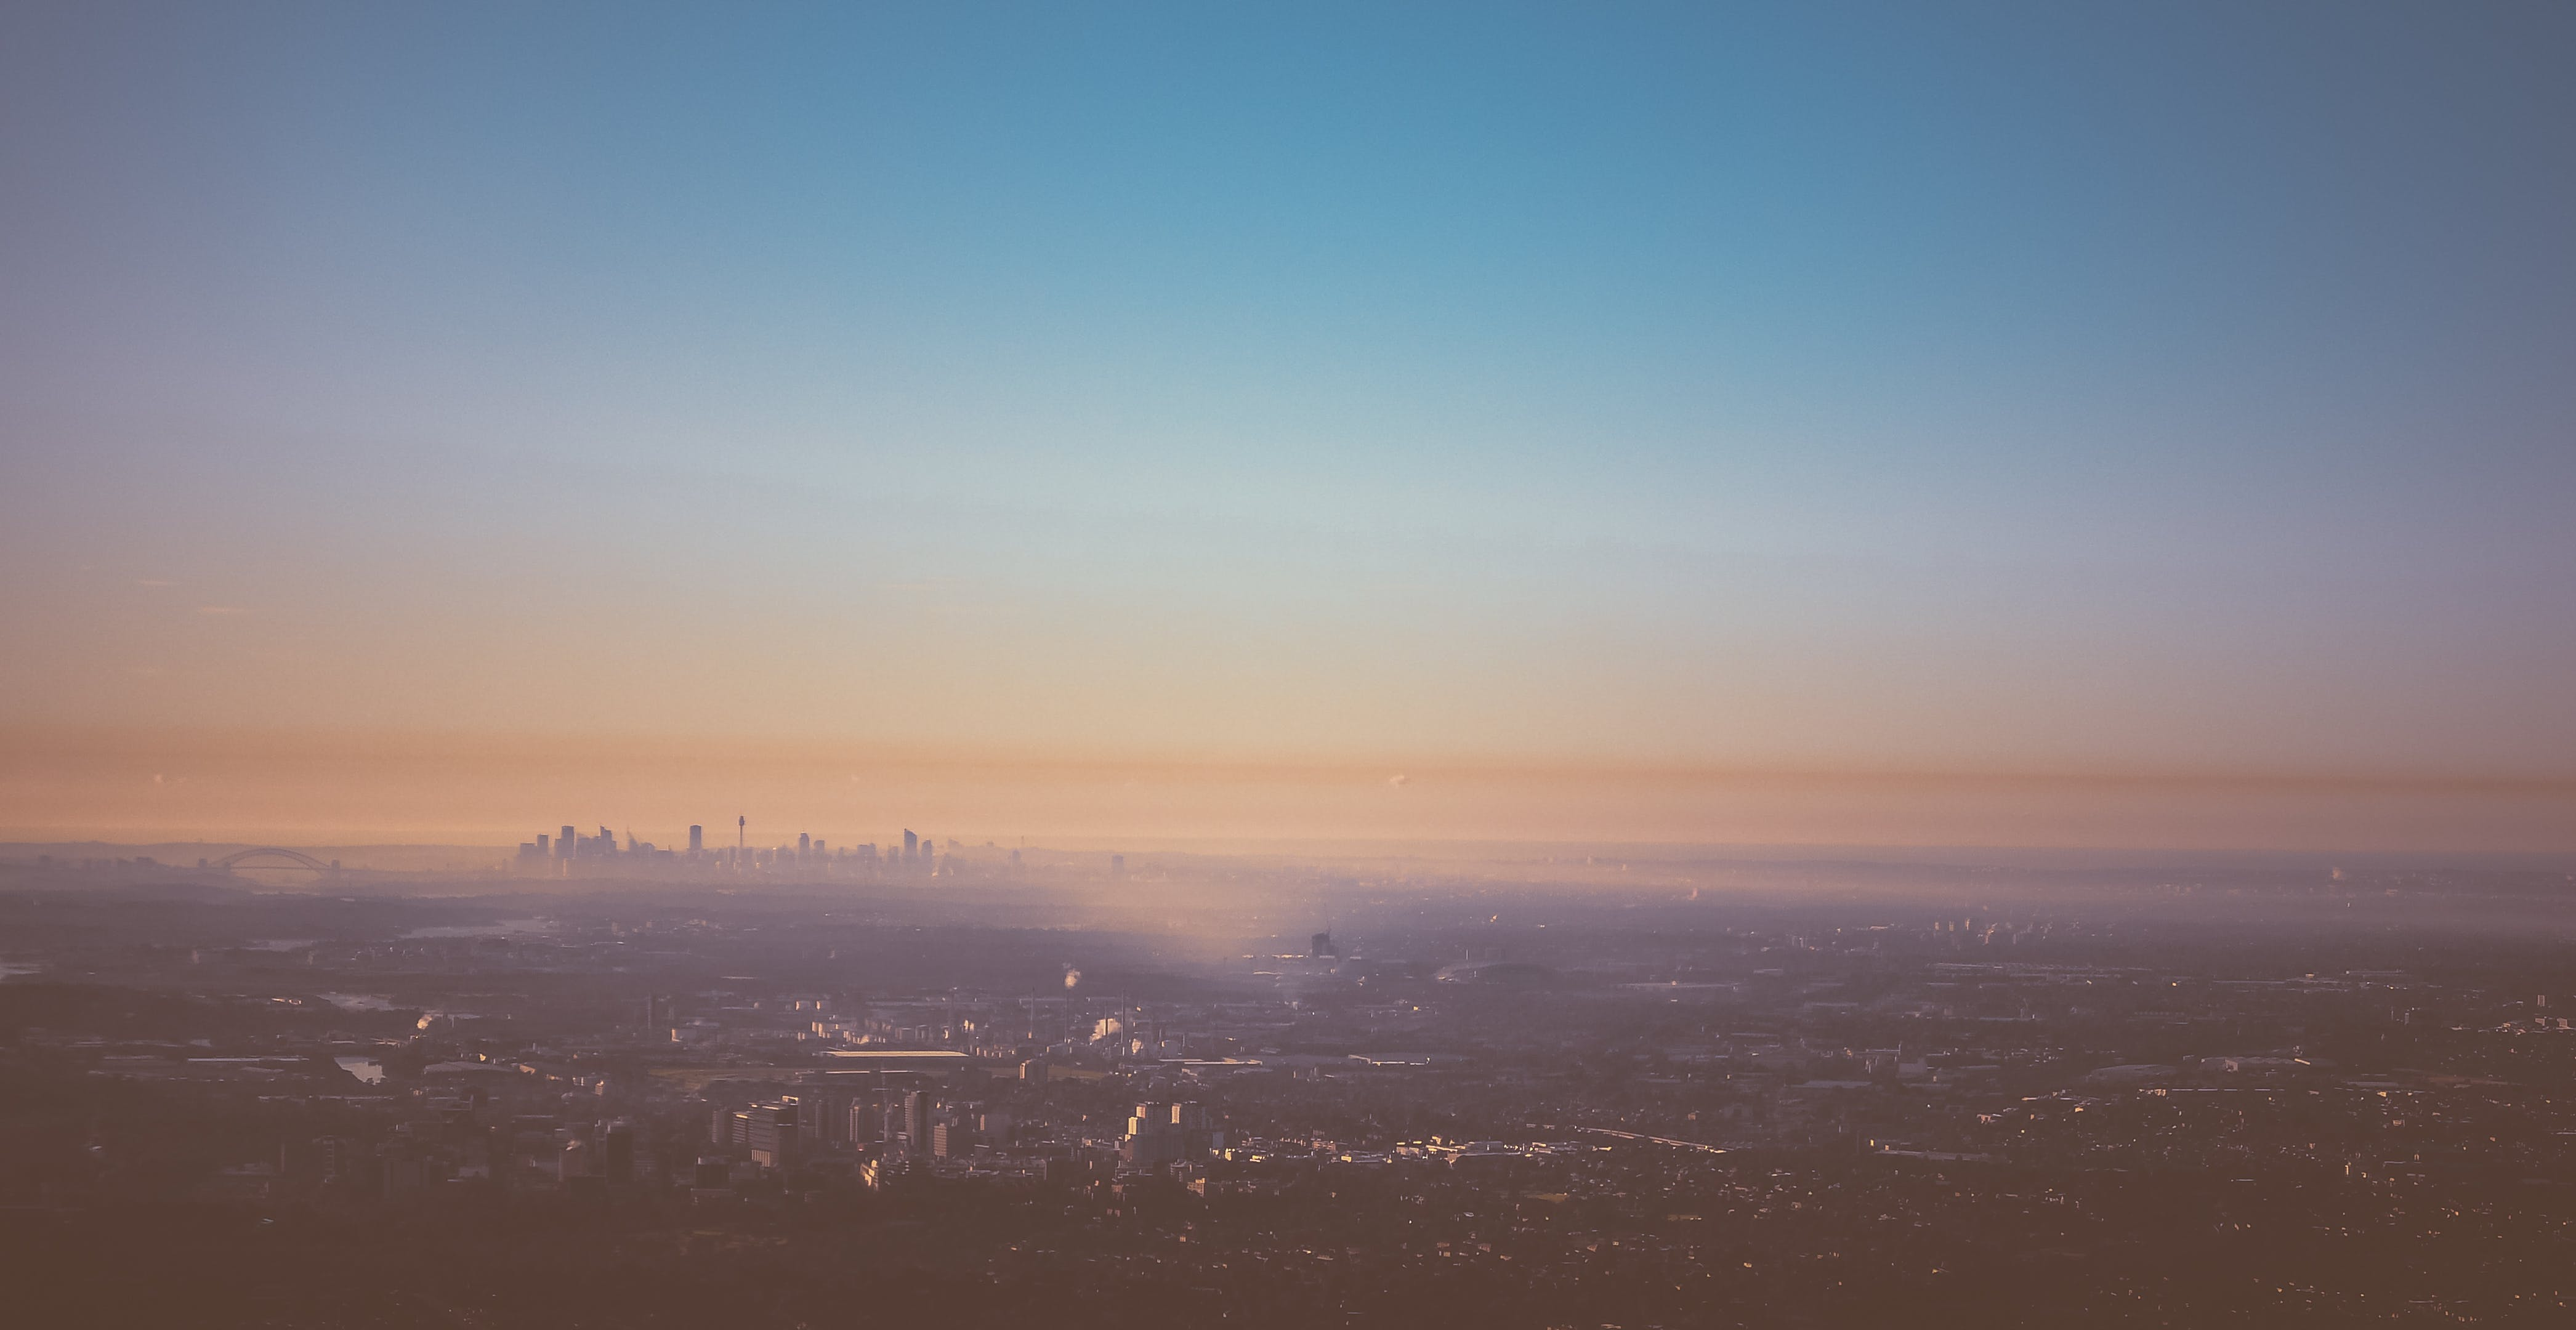 Aerial Photography of Cityscapes